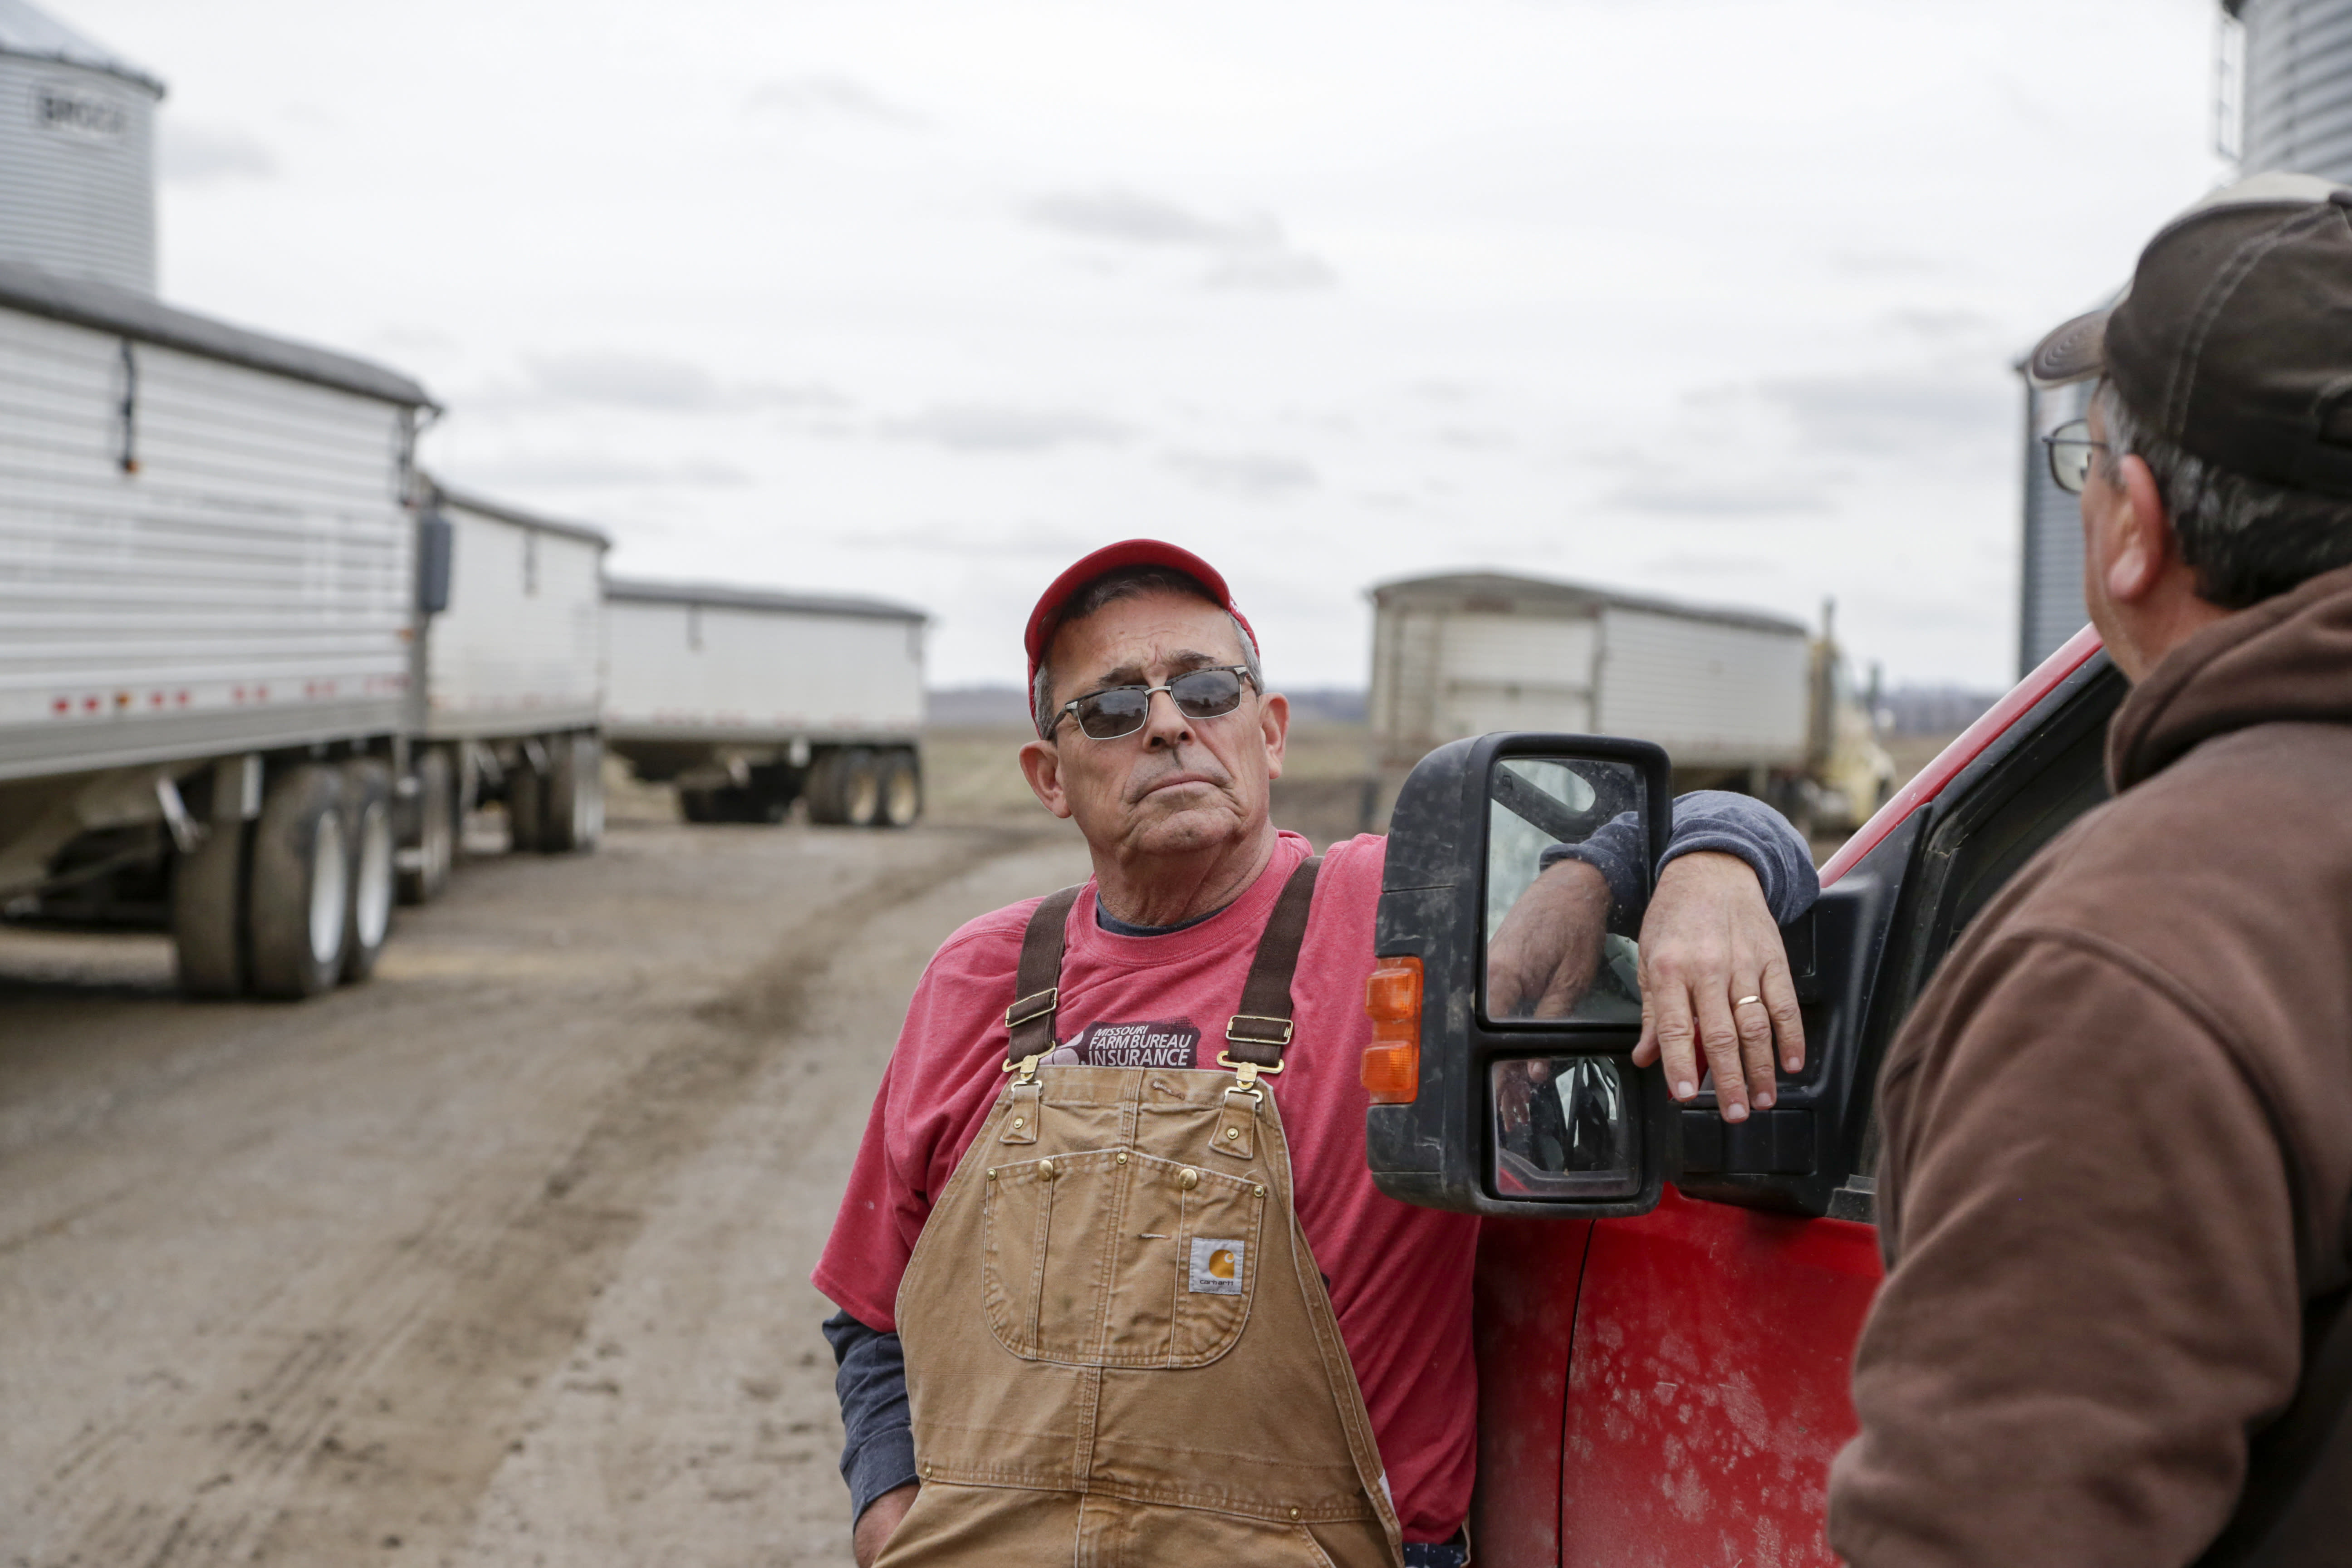 Farmer: 'There's going to be some challenges' for Trump in 2020 if trade doesn't turn around